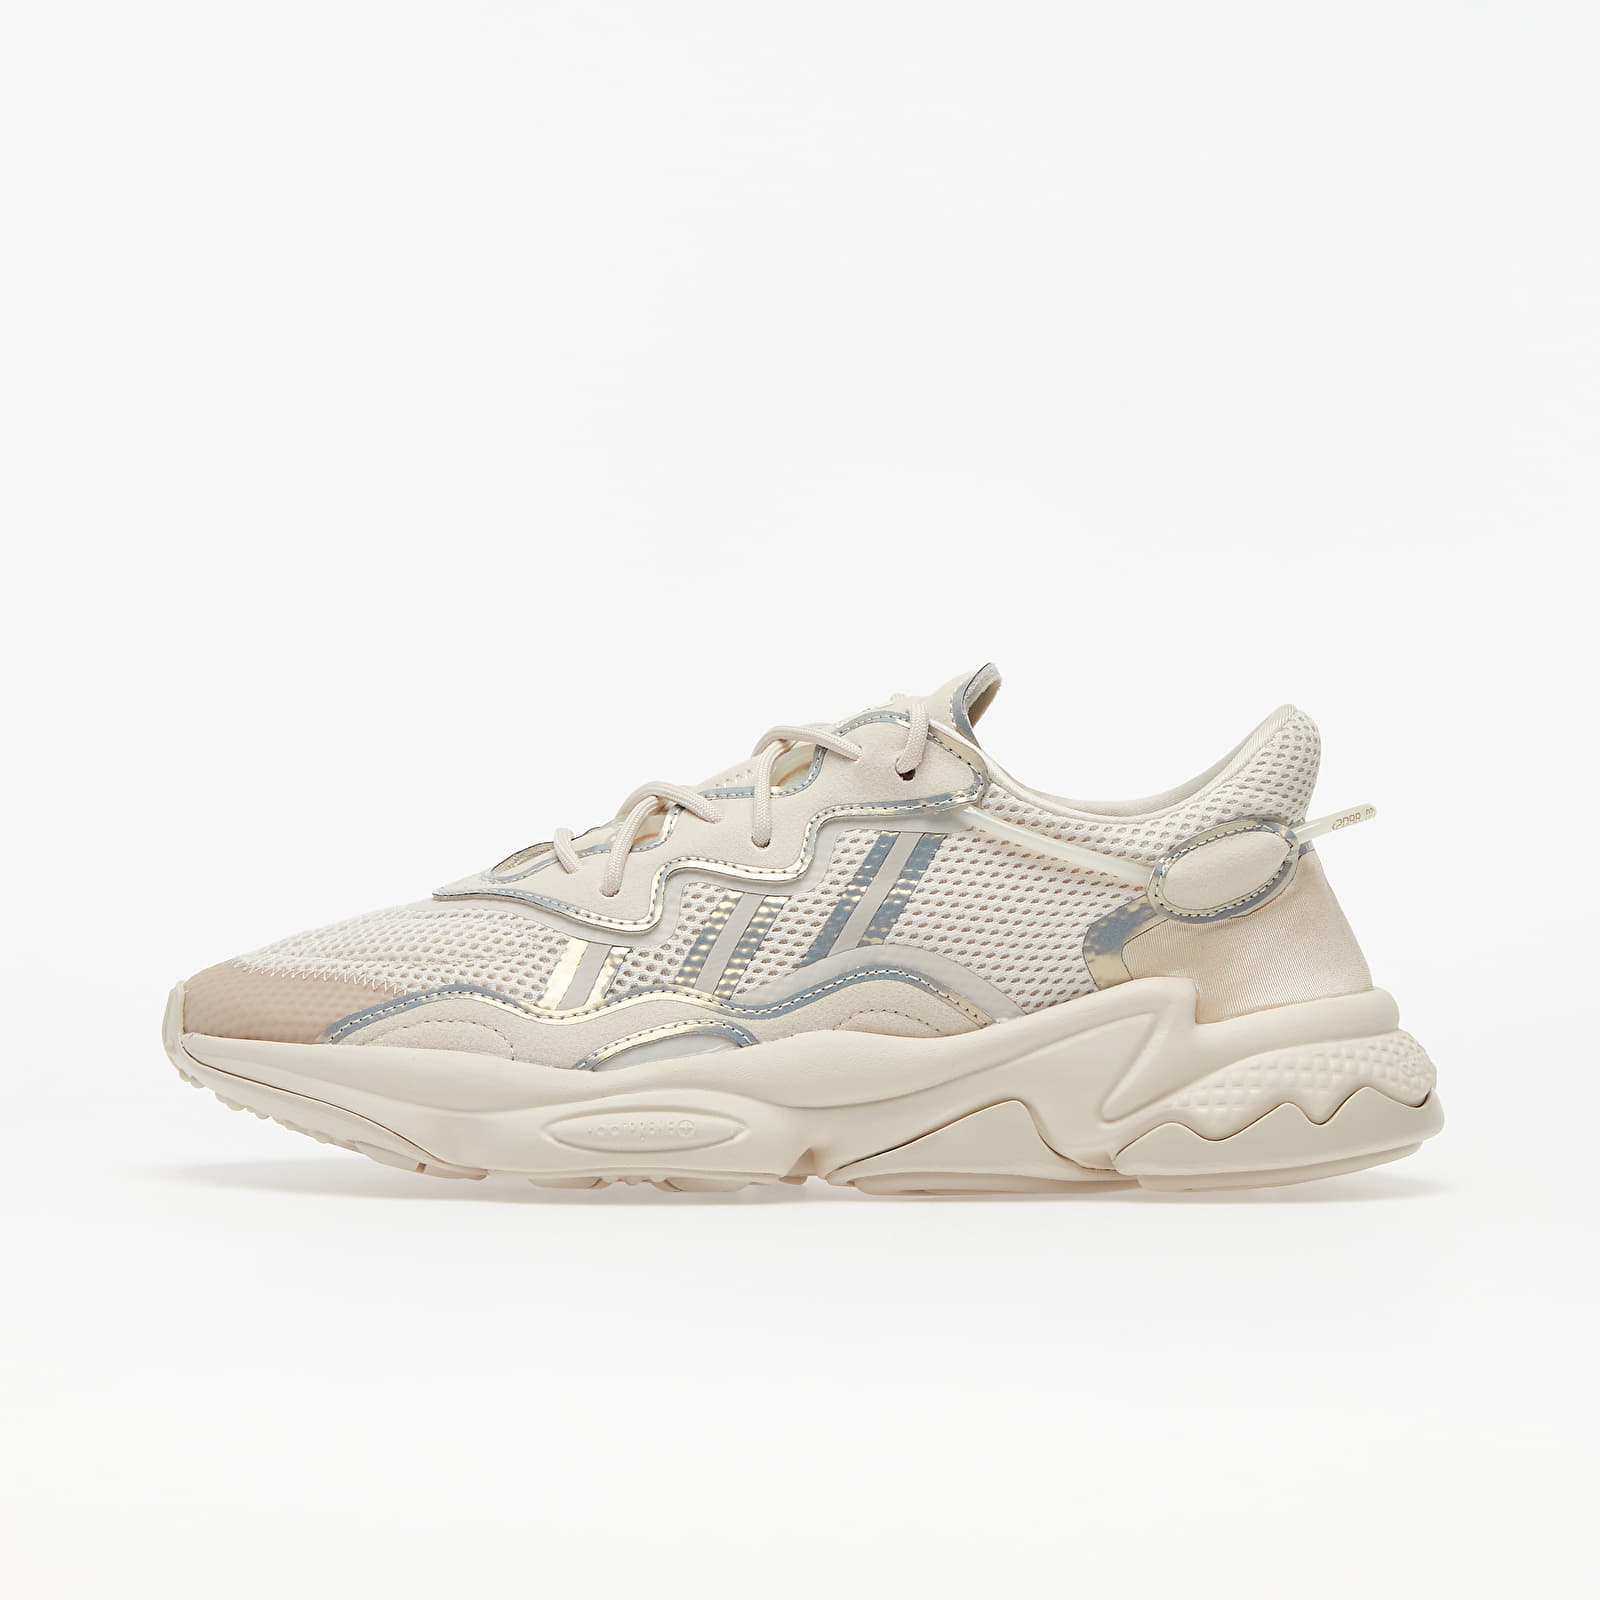 Pánske tenisky a topánky adidas Ozweego Core Brown/ Core Brown/ Ftw White